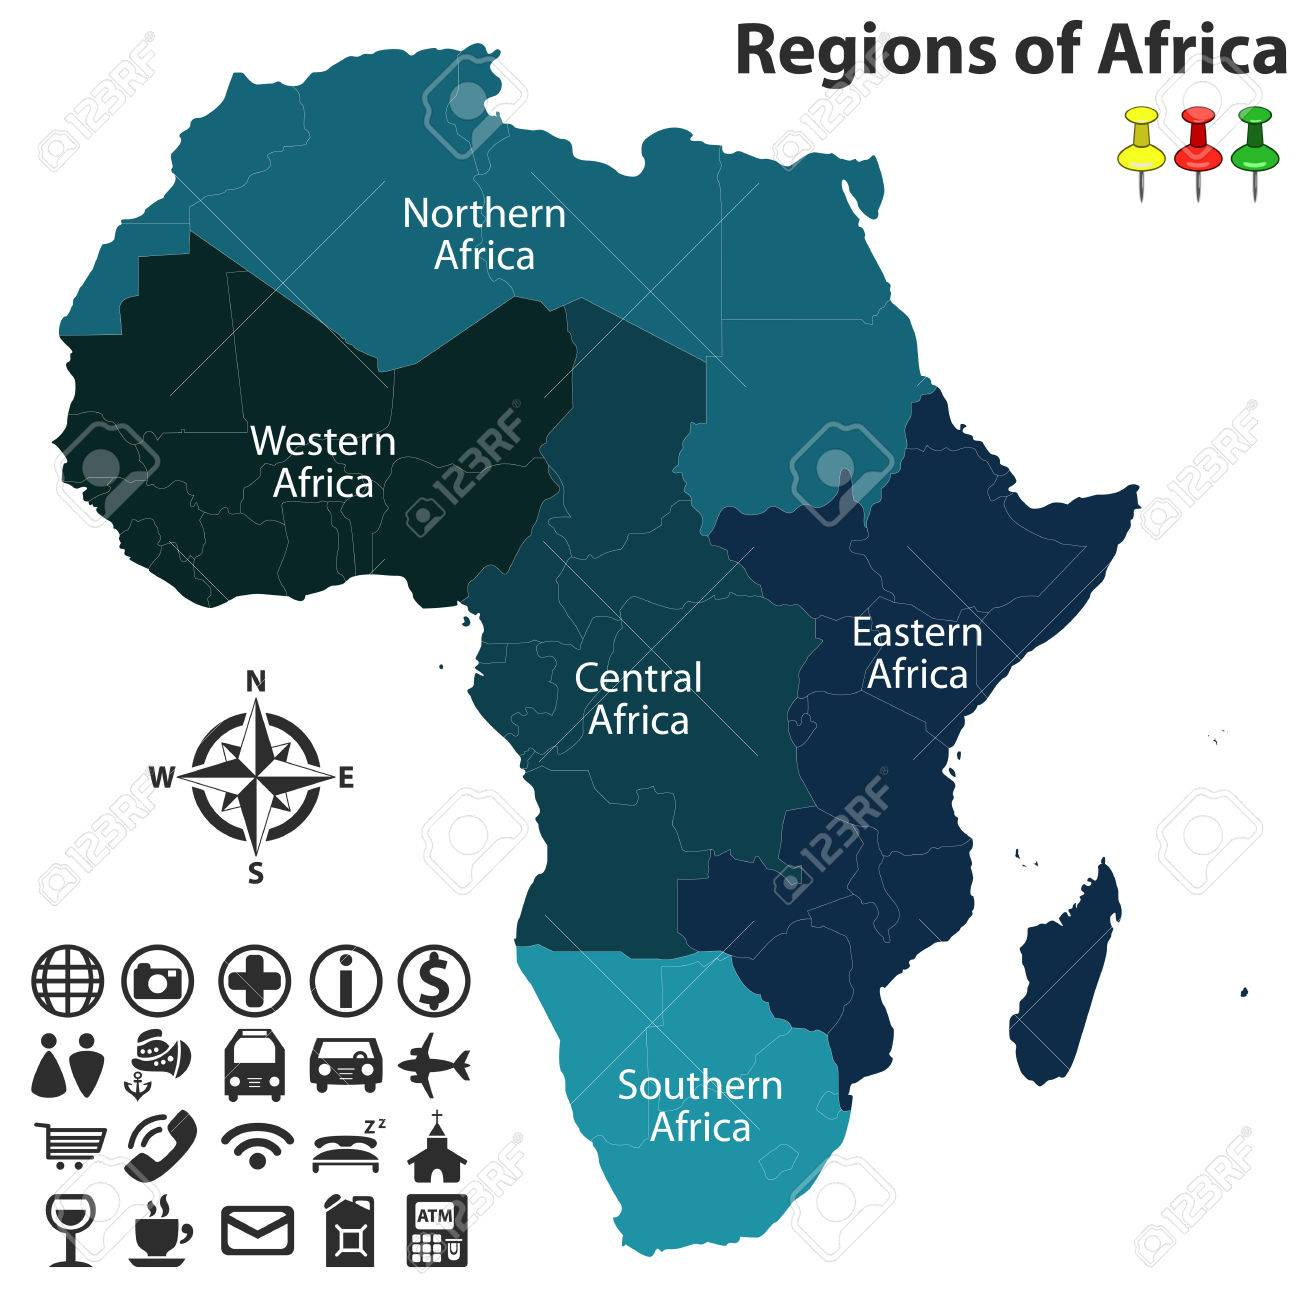 Map Of Africa Regions.Map Of Regions Of Africa With Icons